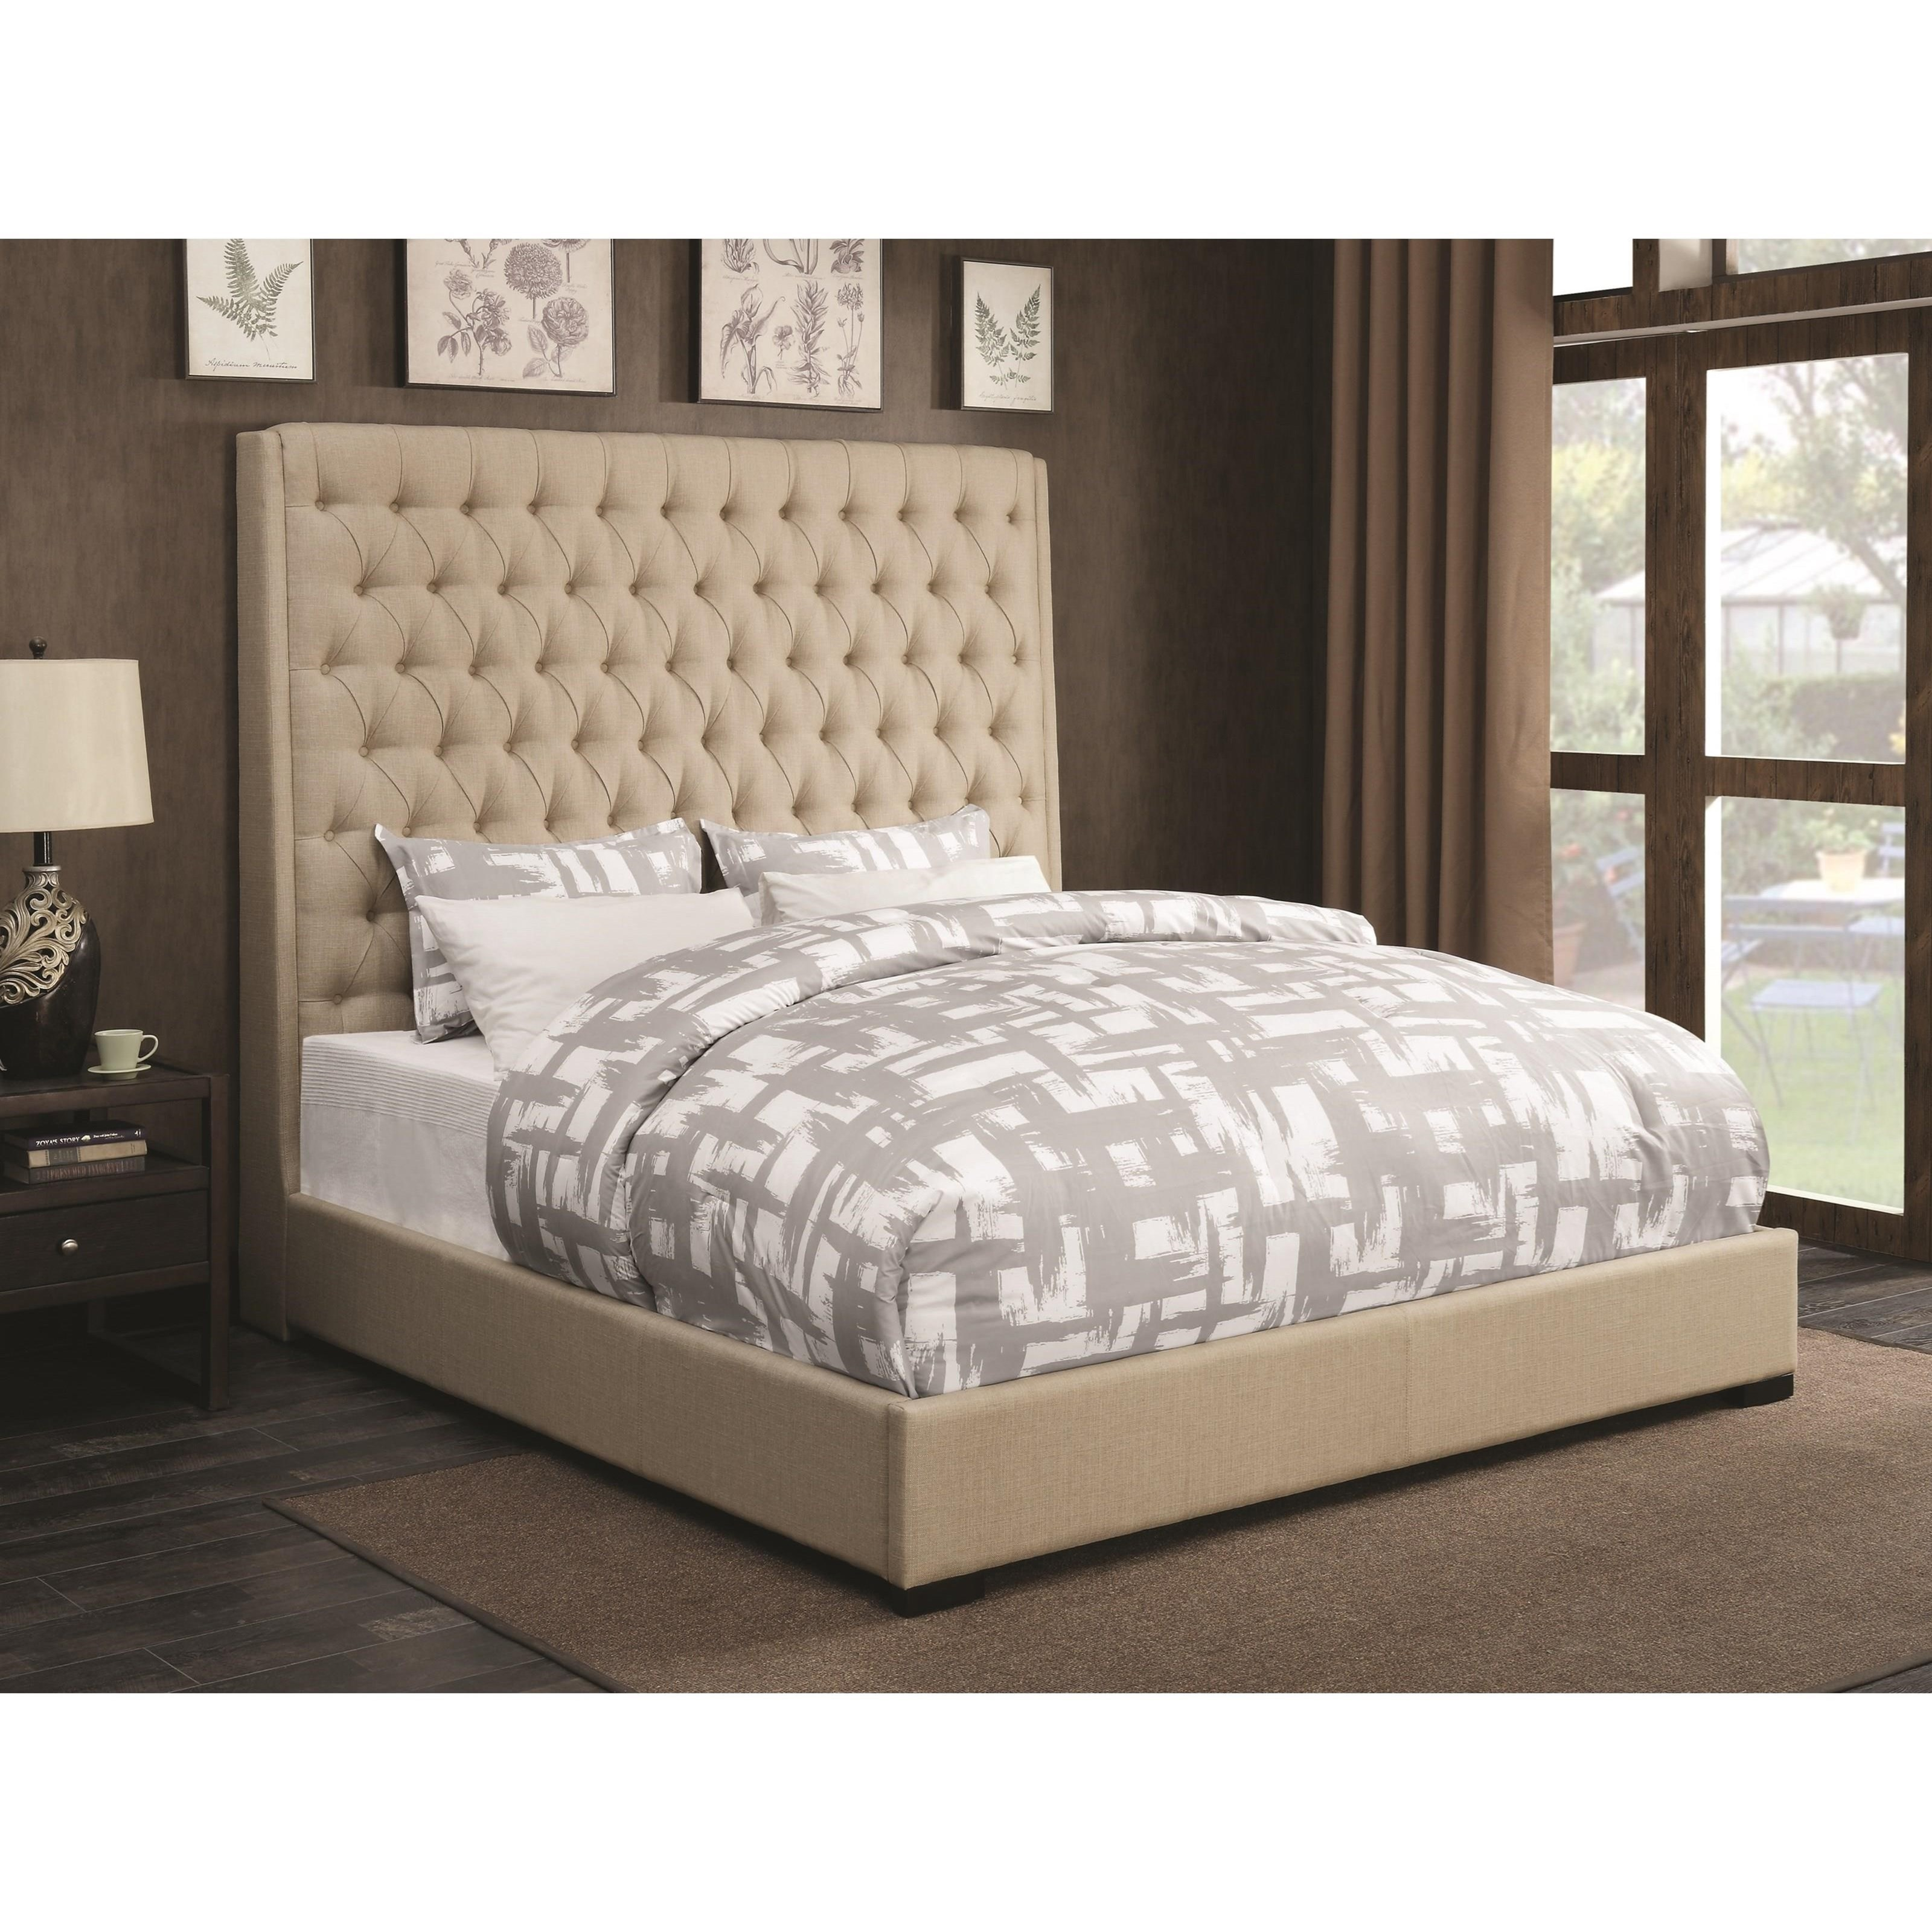 Coaster Upholstered Beds Cal King Bed - Item Number: 300722KW